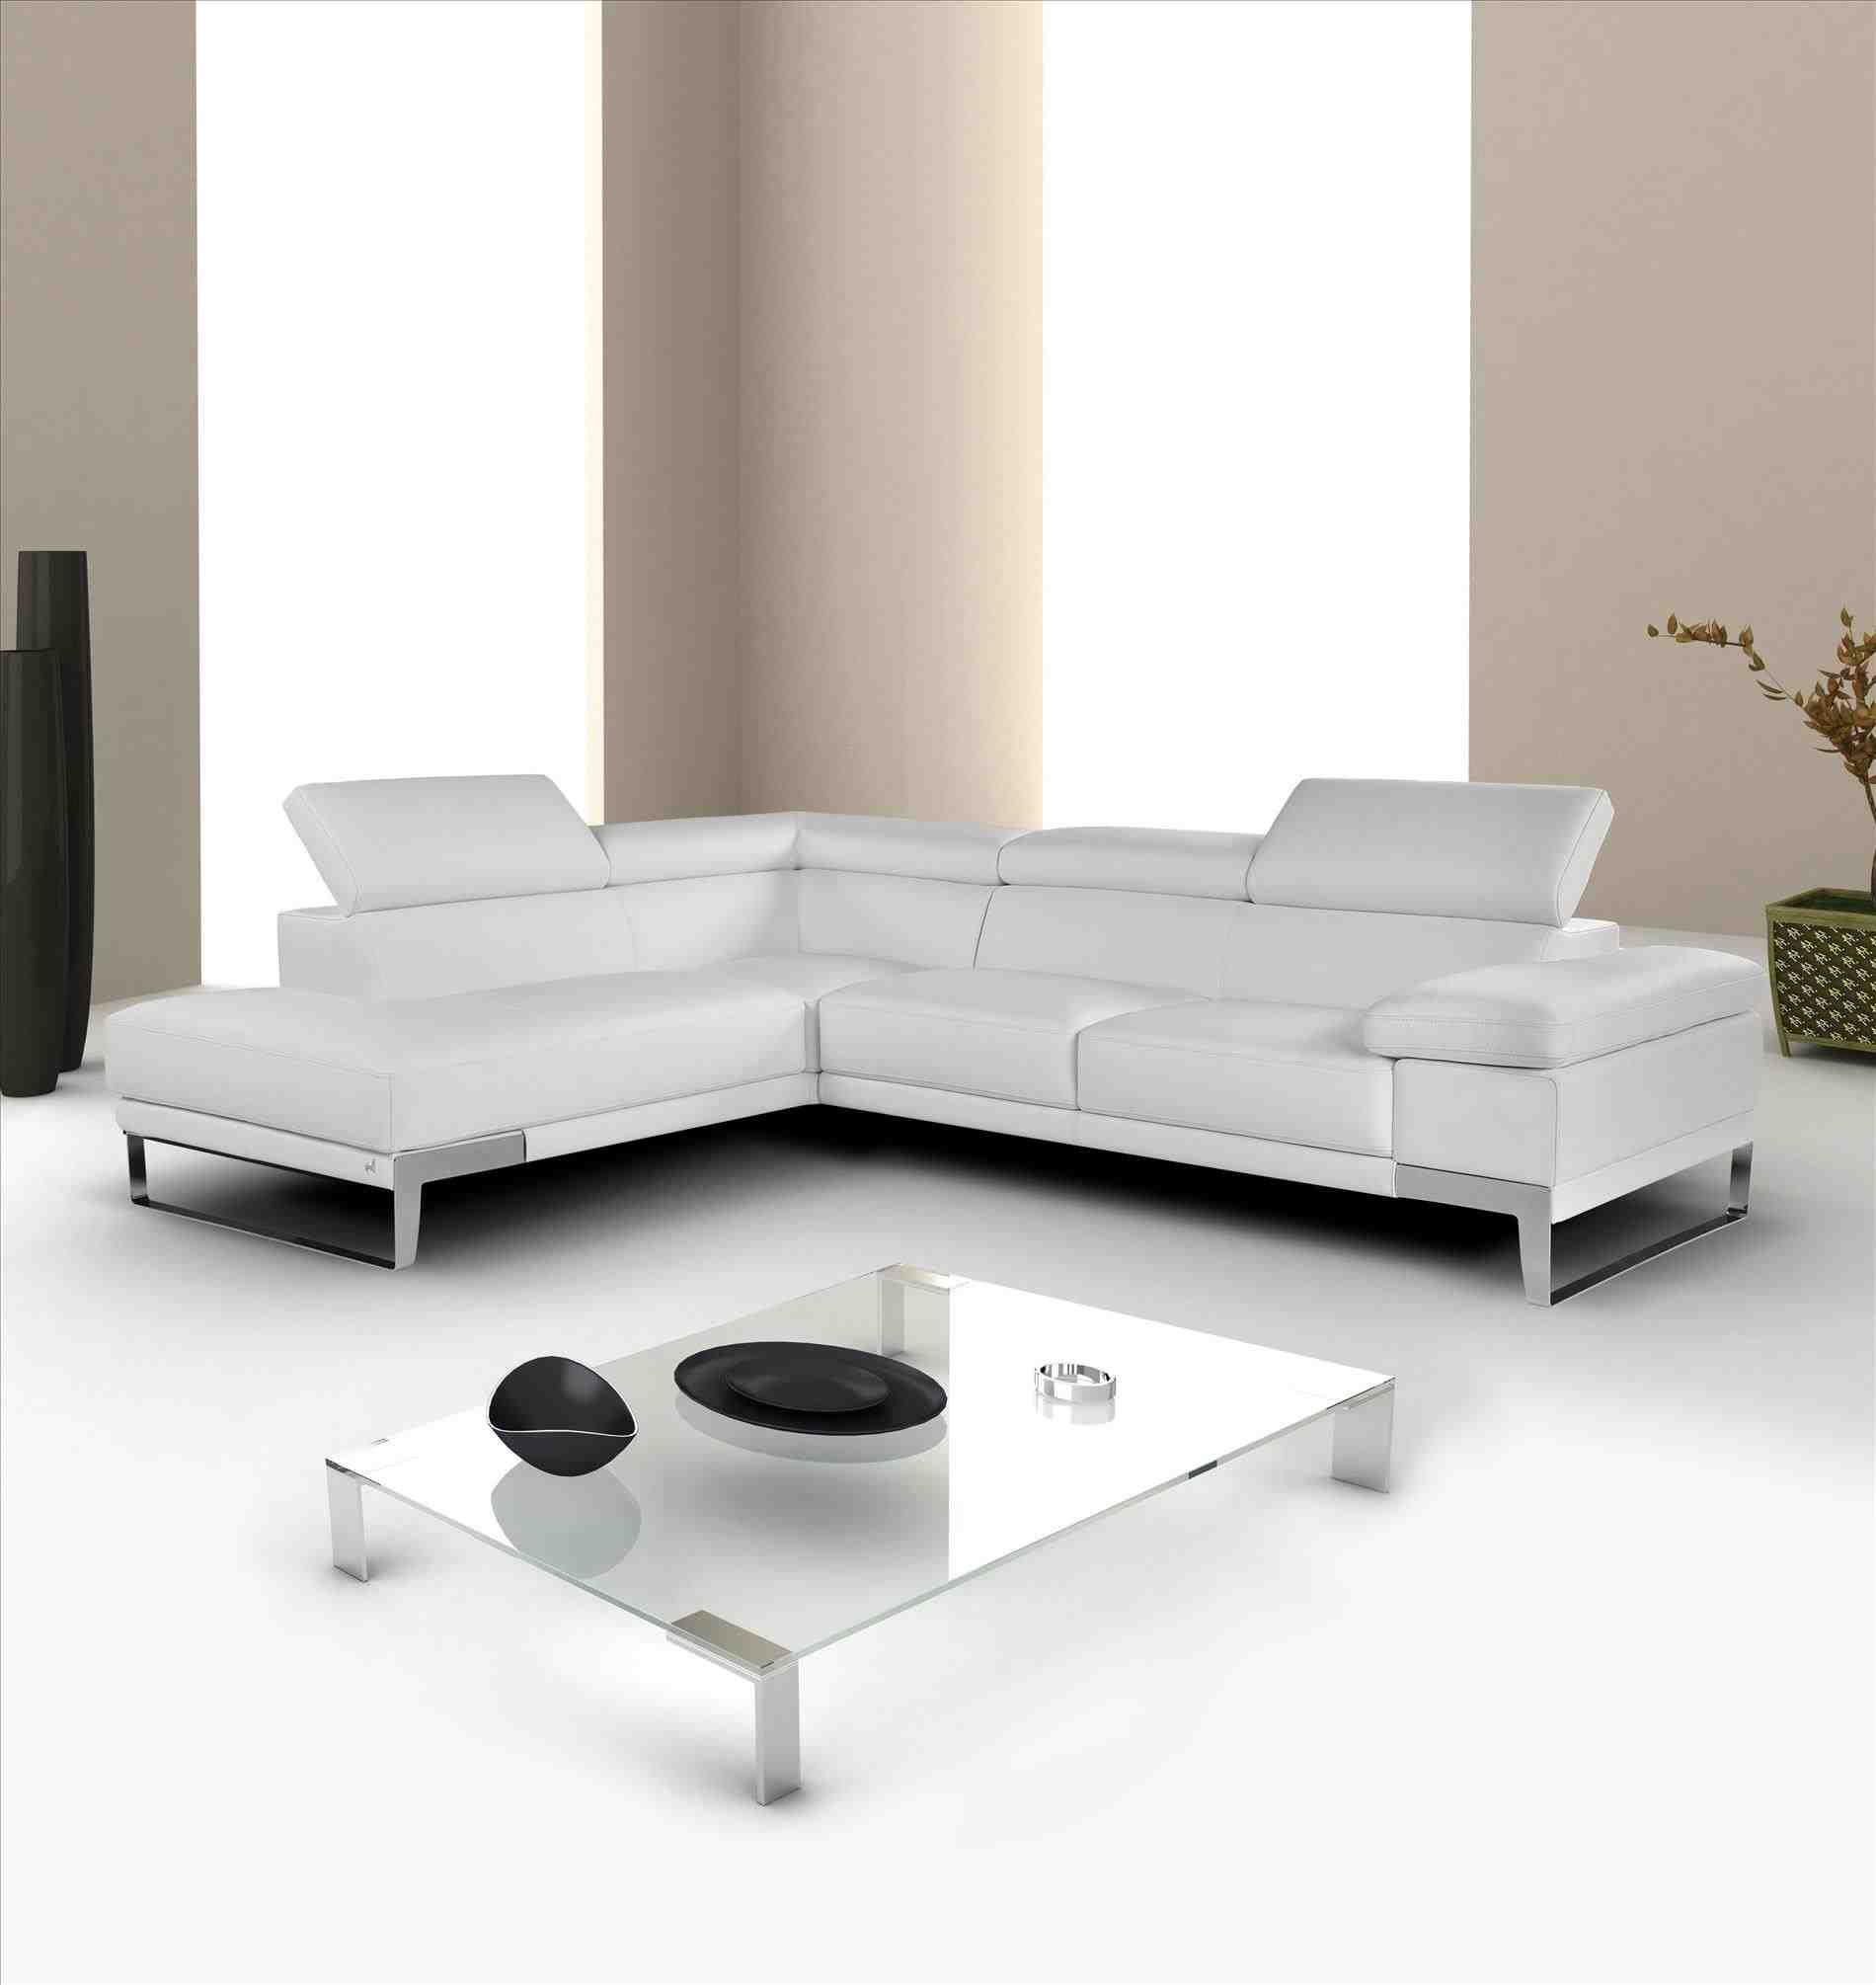 Cheap Modern Furniture Vancouver Shop Rove Concepts For Everything Mid Century And Modern White Sectional Sofa Sectional Sofa Italian Leather Sectional Sofa